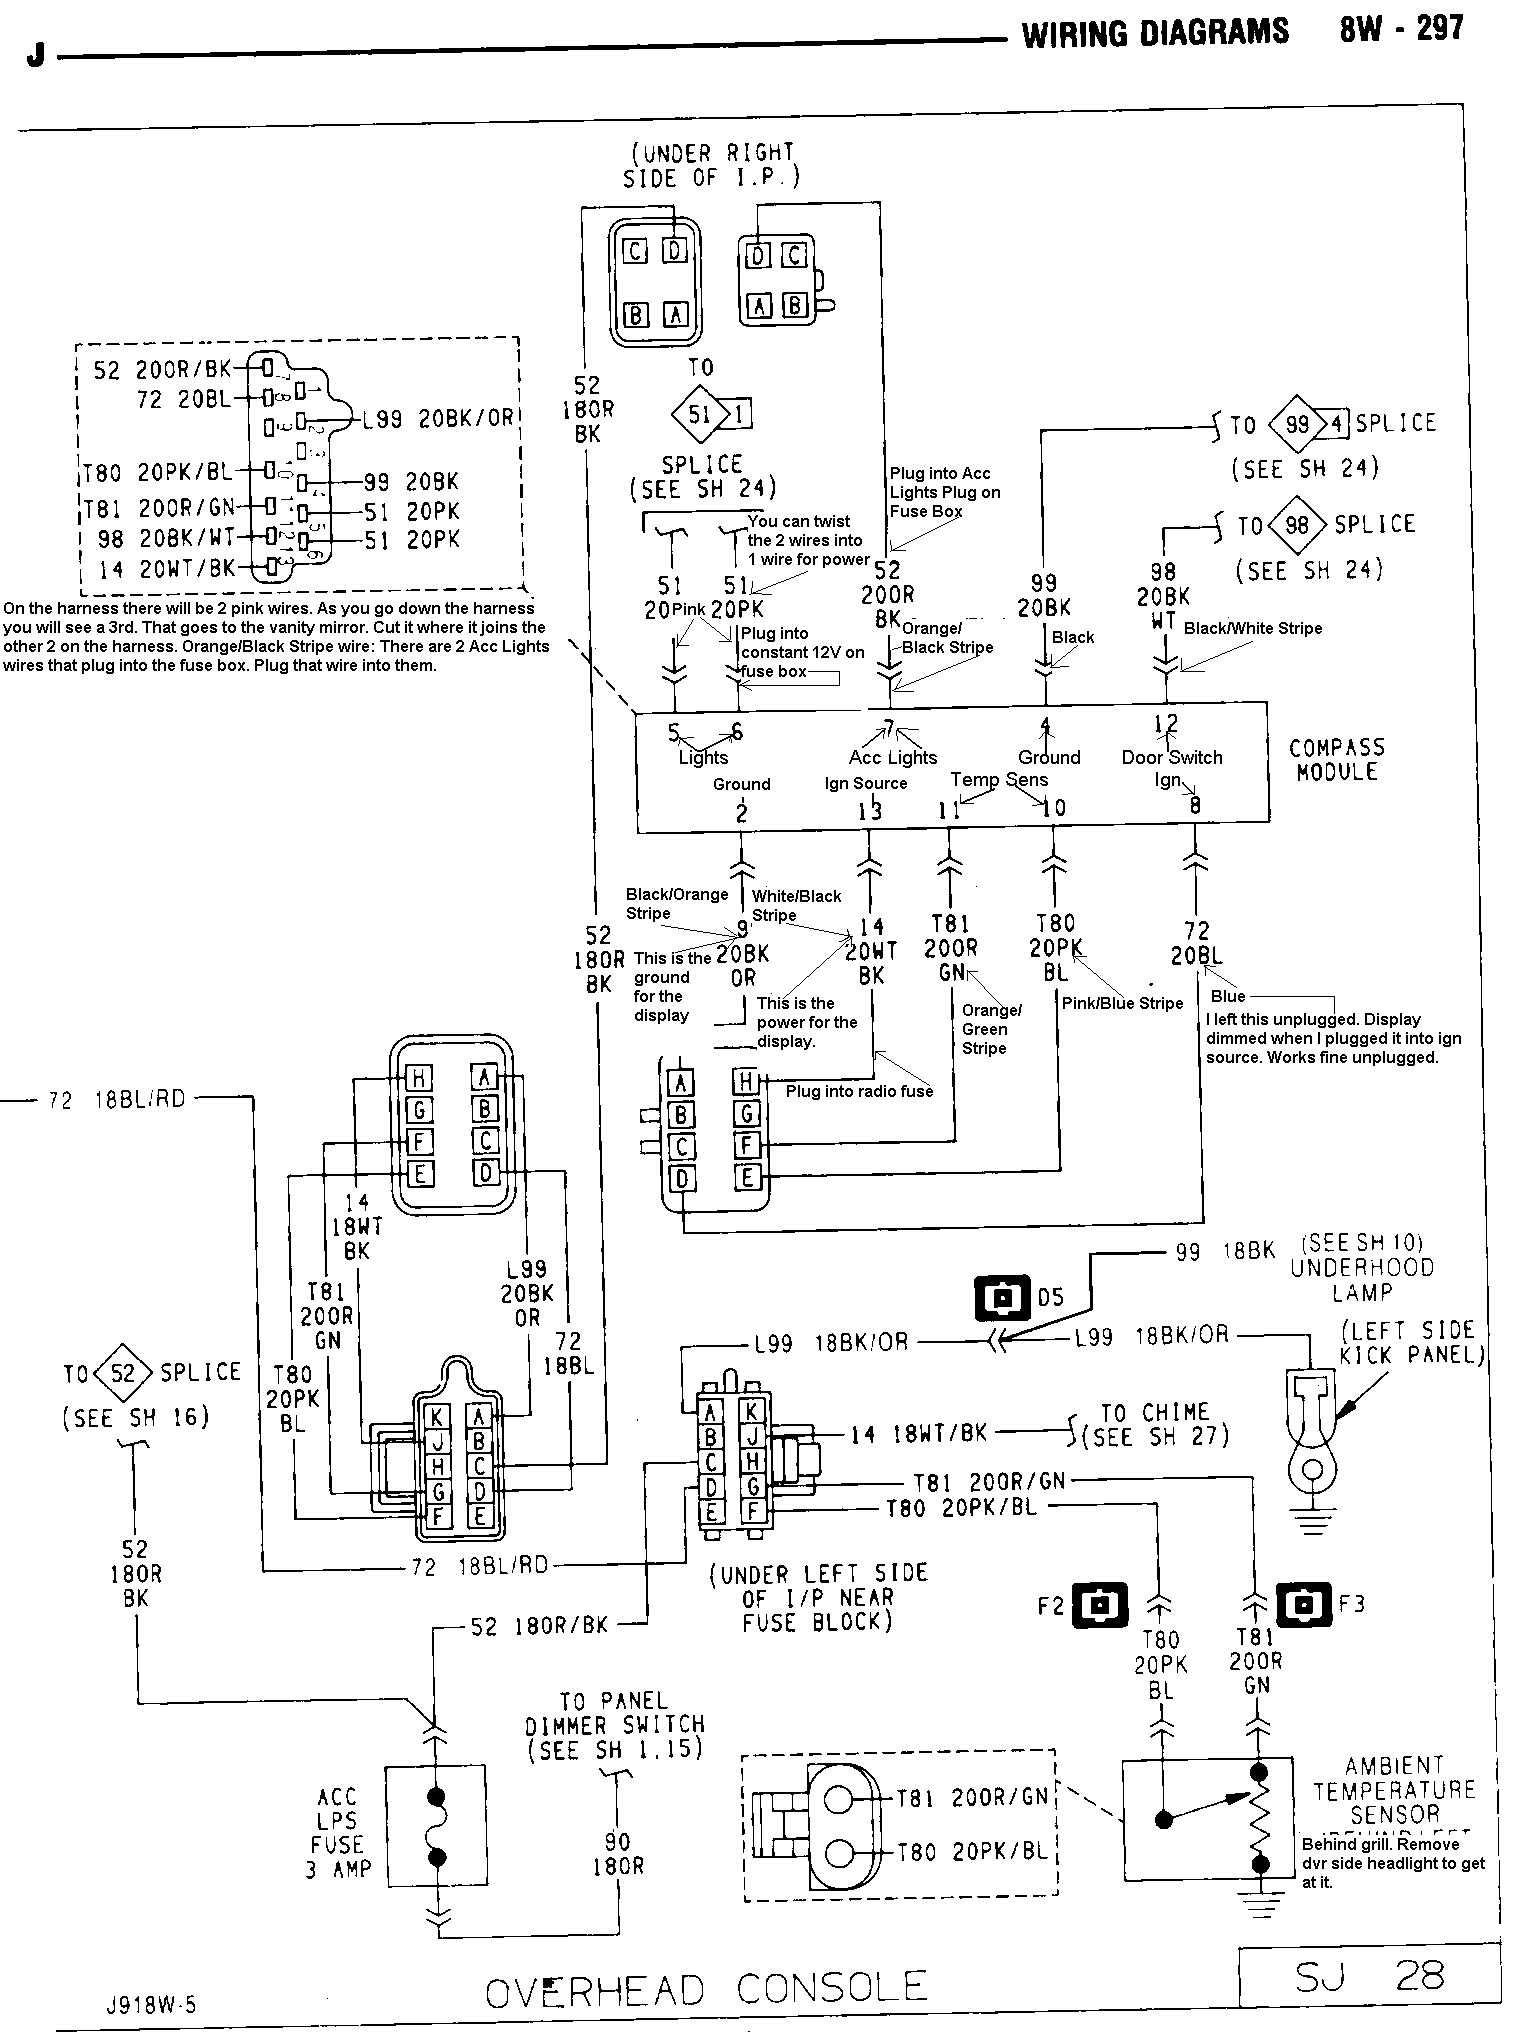 91consolediagrammodified tom 'oljeep' collins fsj wiring page jeep cherokee overhead console wiring diagram at fashall.co